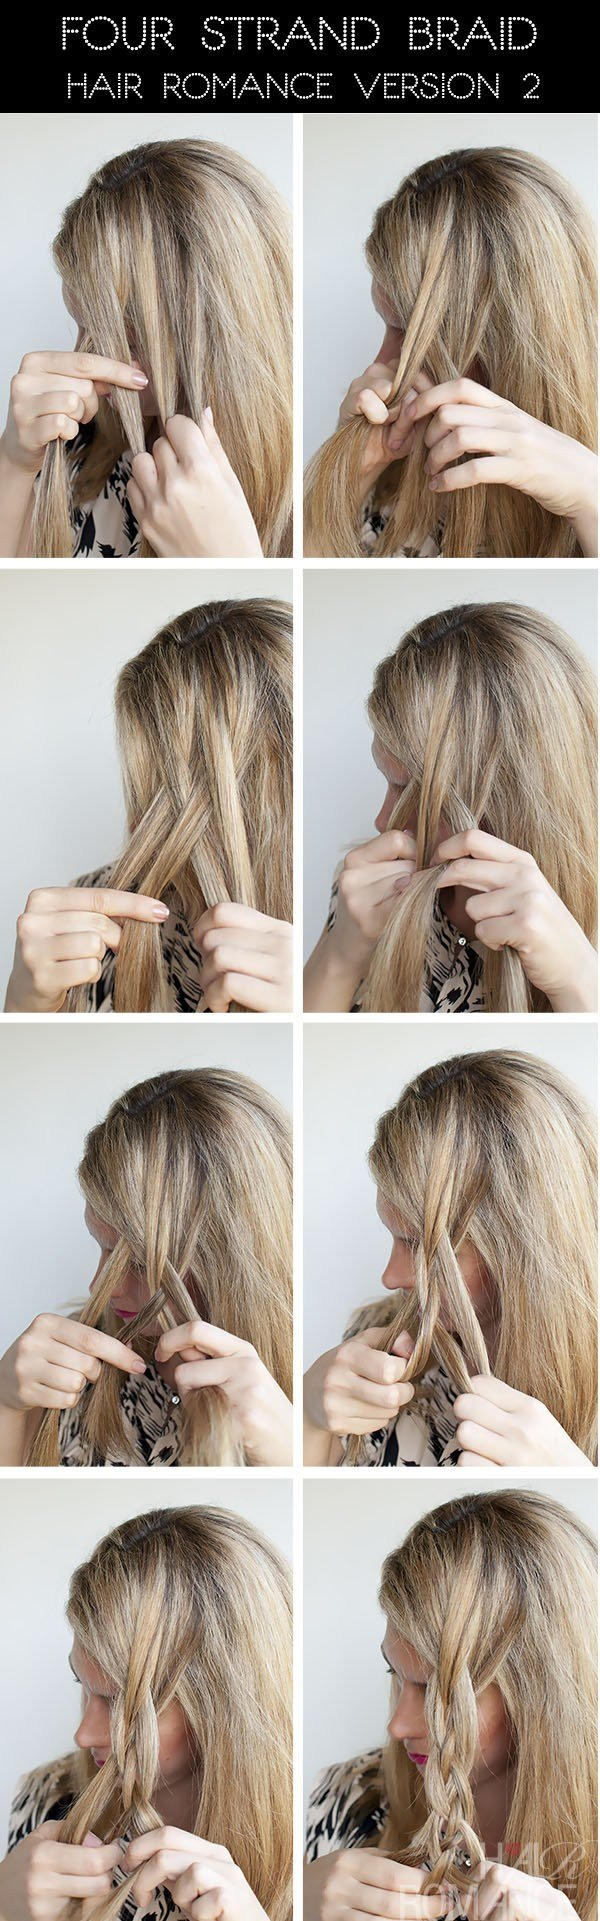 The Best Hairstyle Tutorial Four Strand Braids And Slide Up Pictures